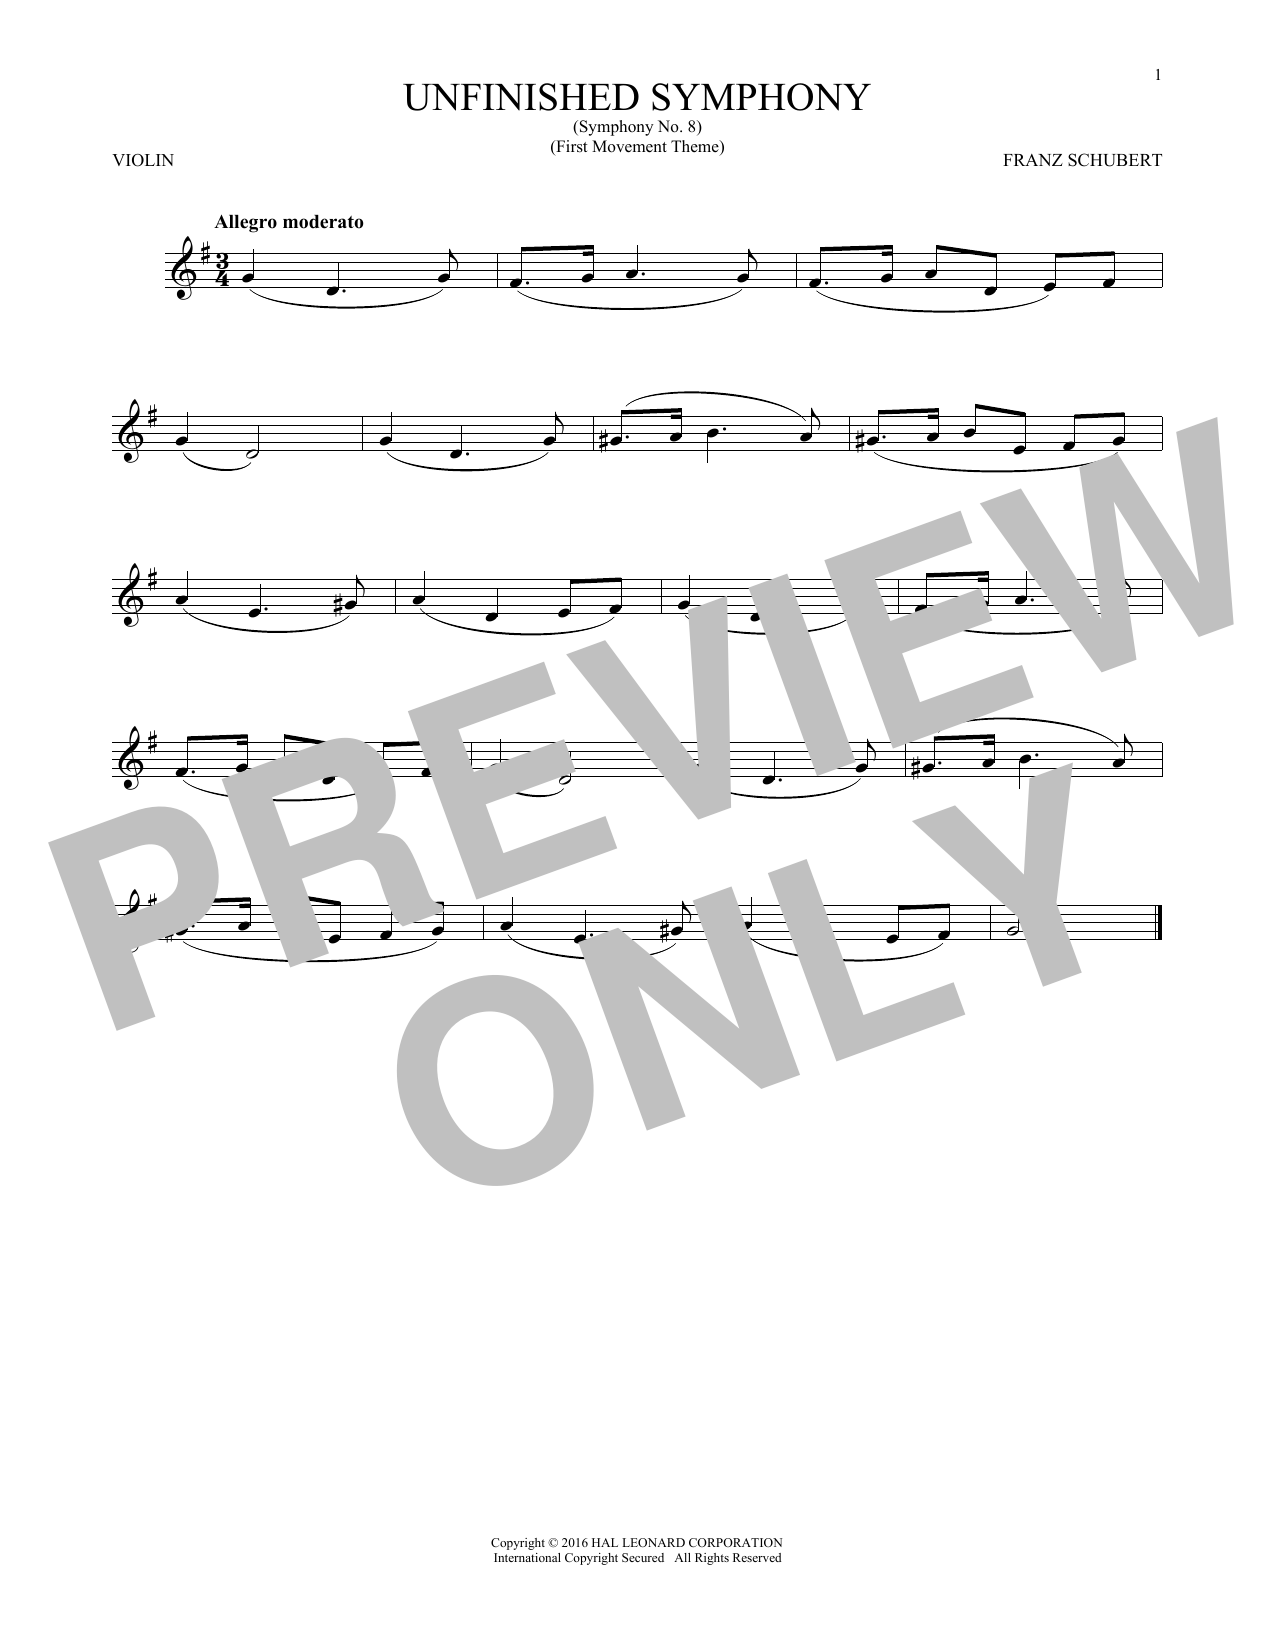 The Unfinished Symphony (Theme) (Violin Solo)